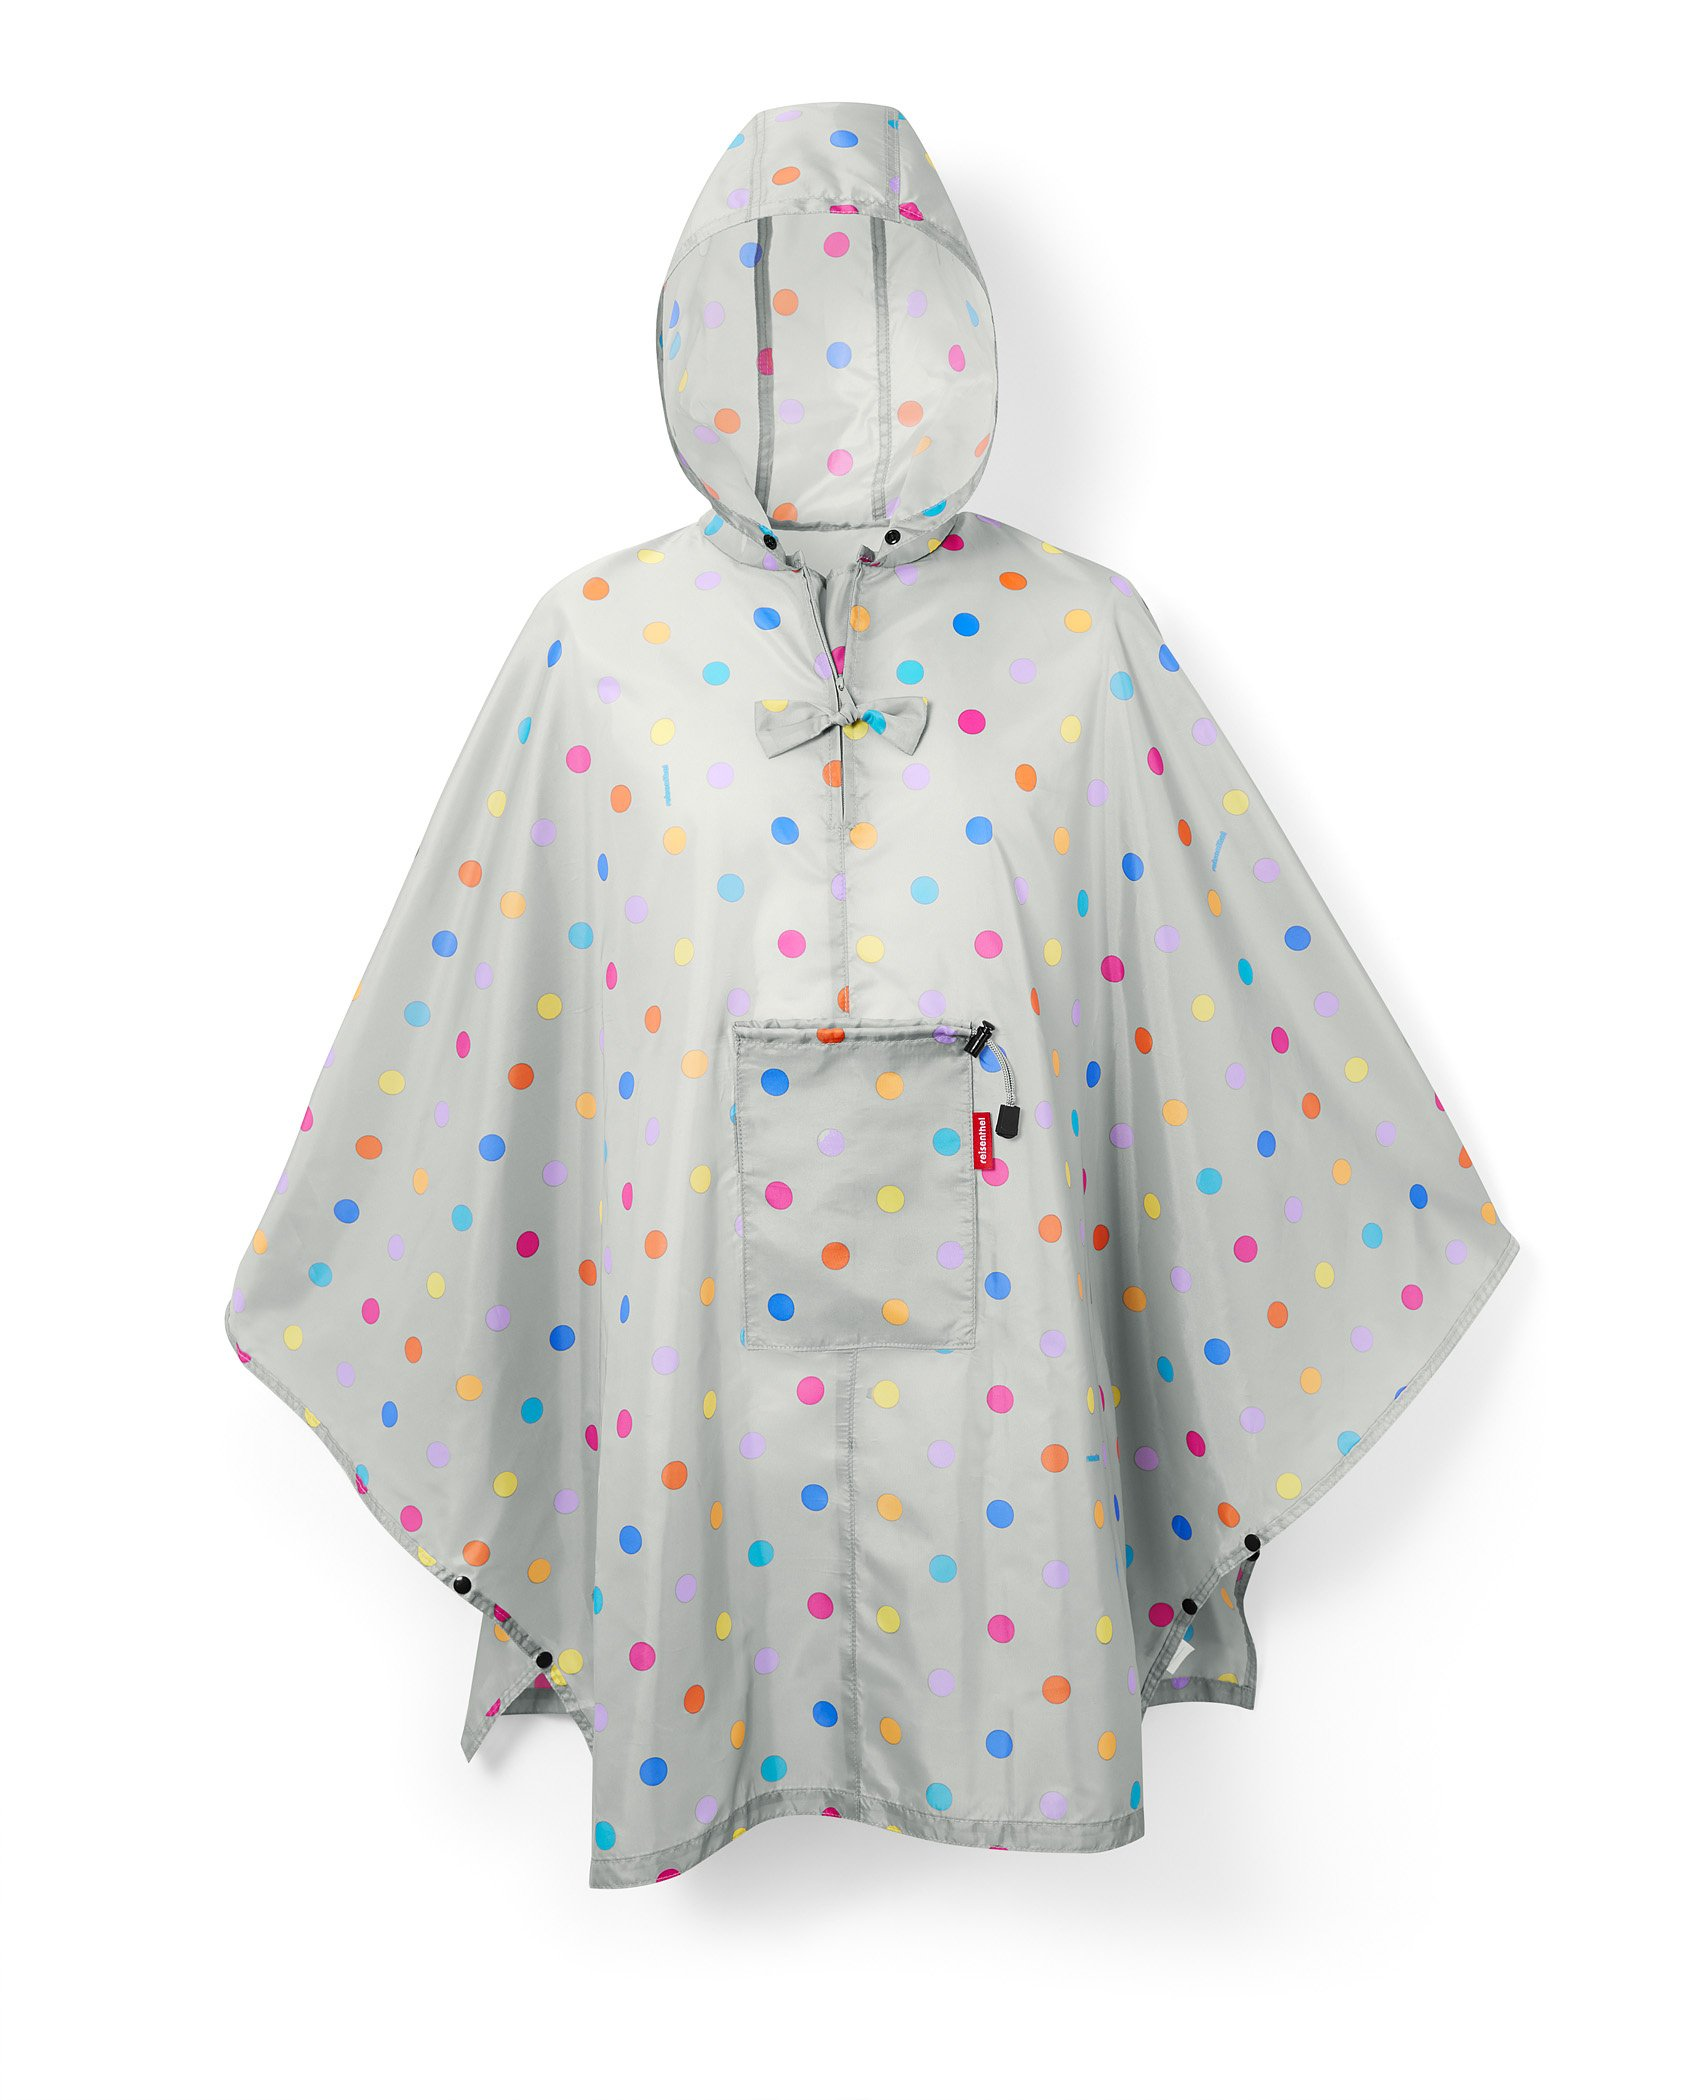 reisenthel Mini Maxi Poncho, Lightweight and Packable Design